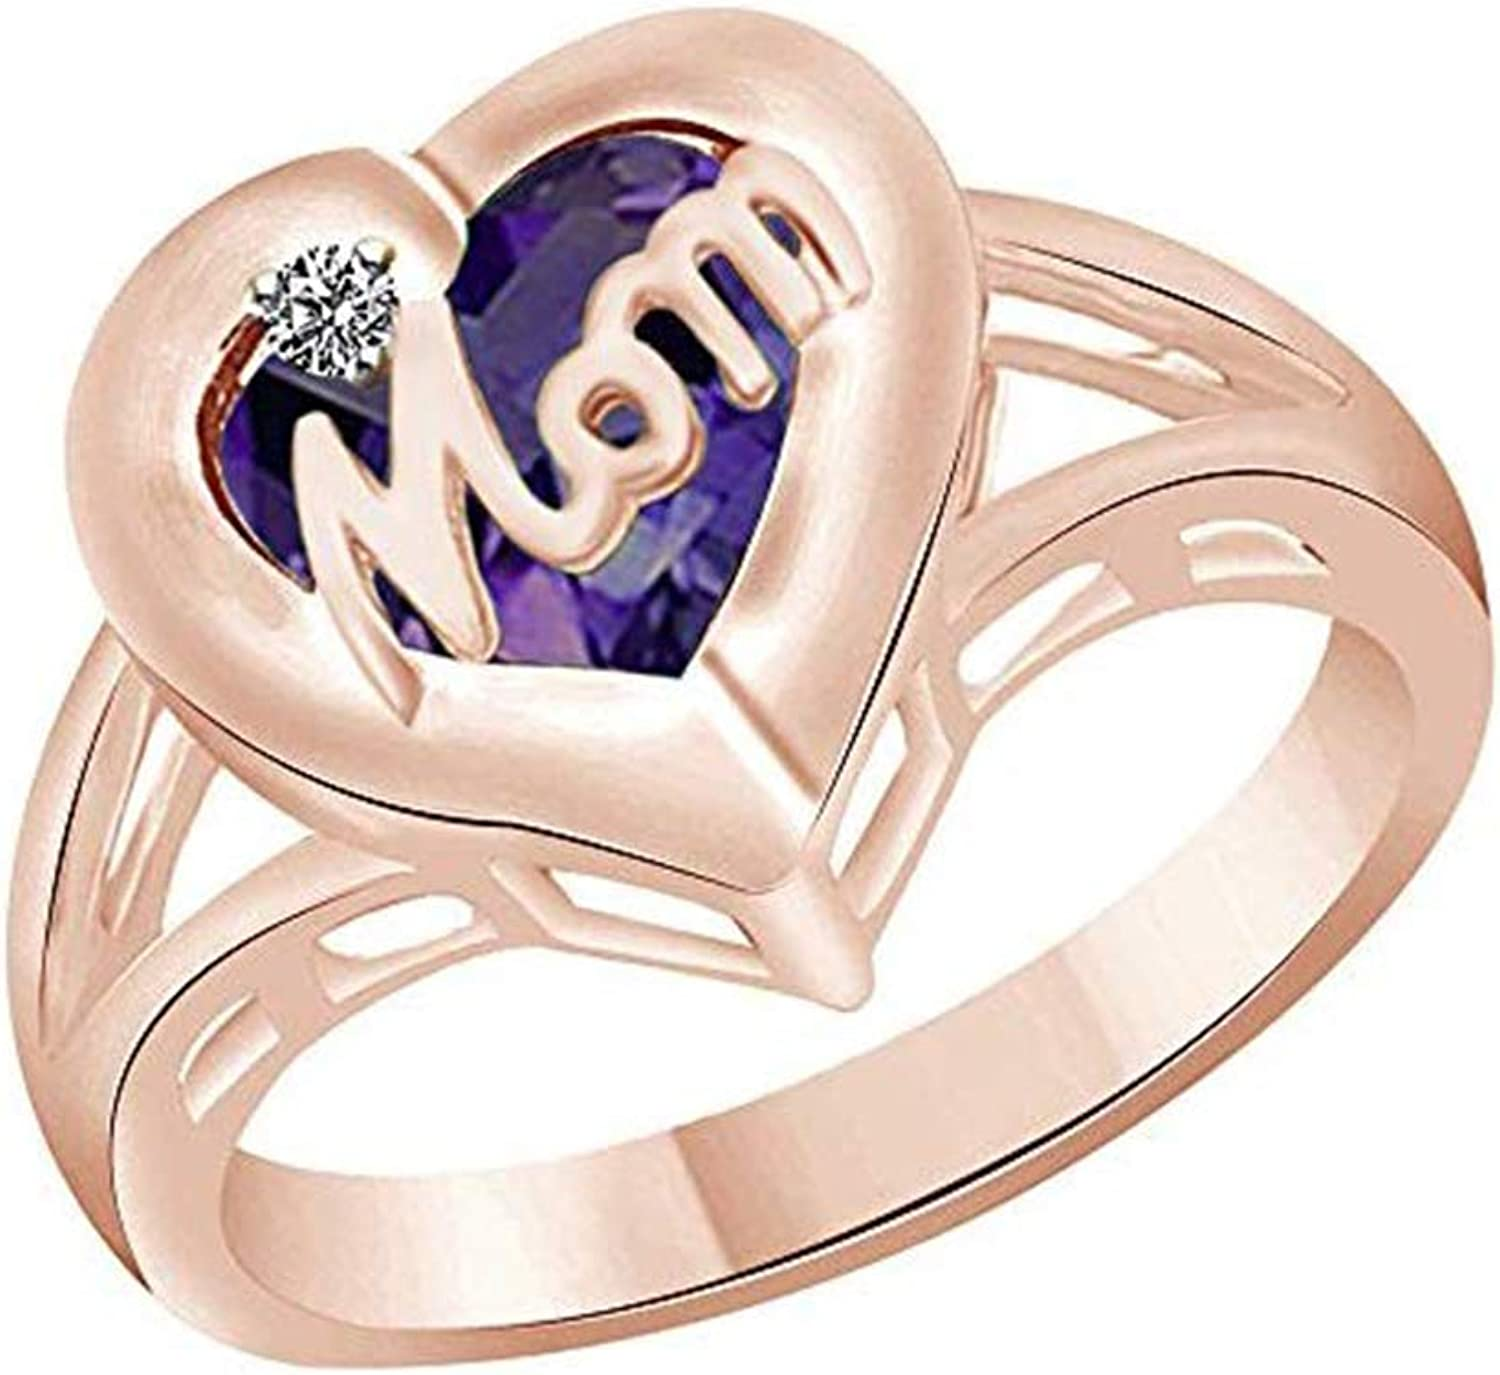 AFFY Mothers Day Jewelry Gifts Simulated Alexandrite & Cubic Zirconia Mom Heart Promise Ring in 925 Sterling Silver